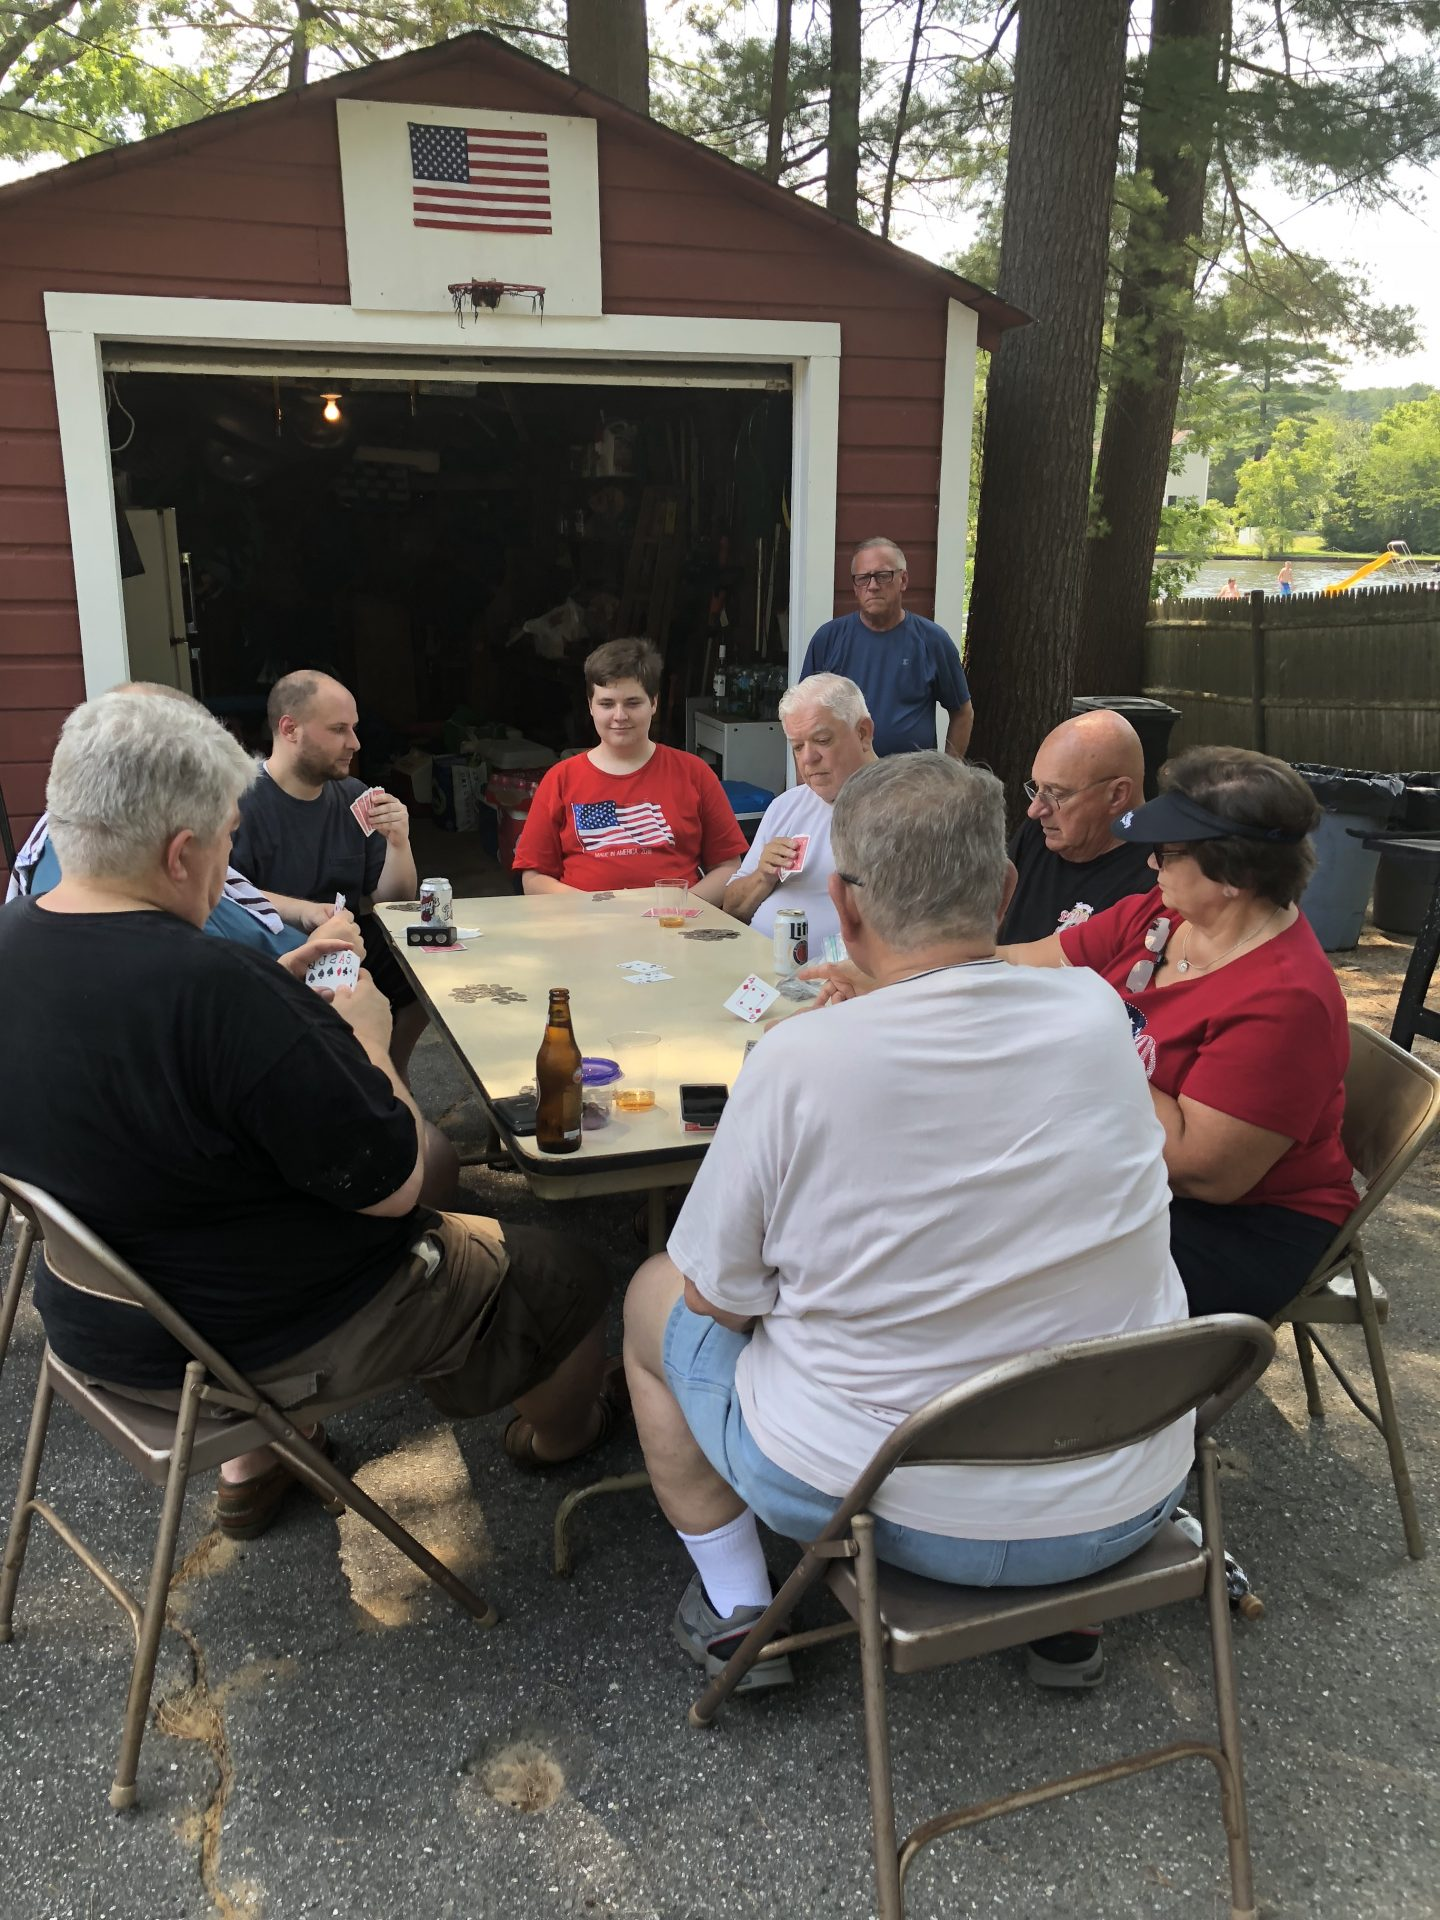 Playing cards up the camp…July 4, 2018…